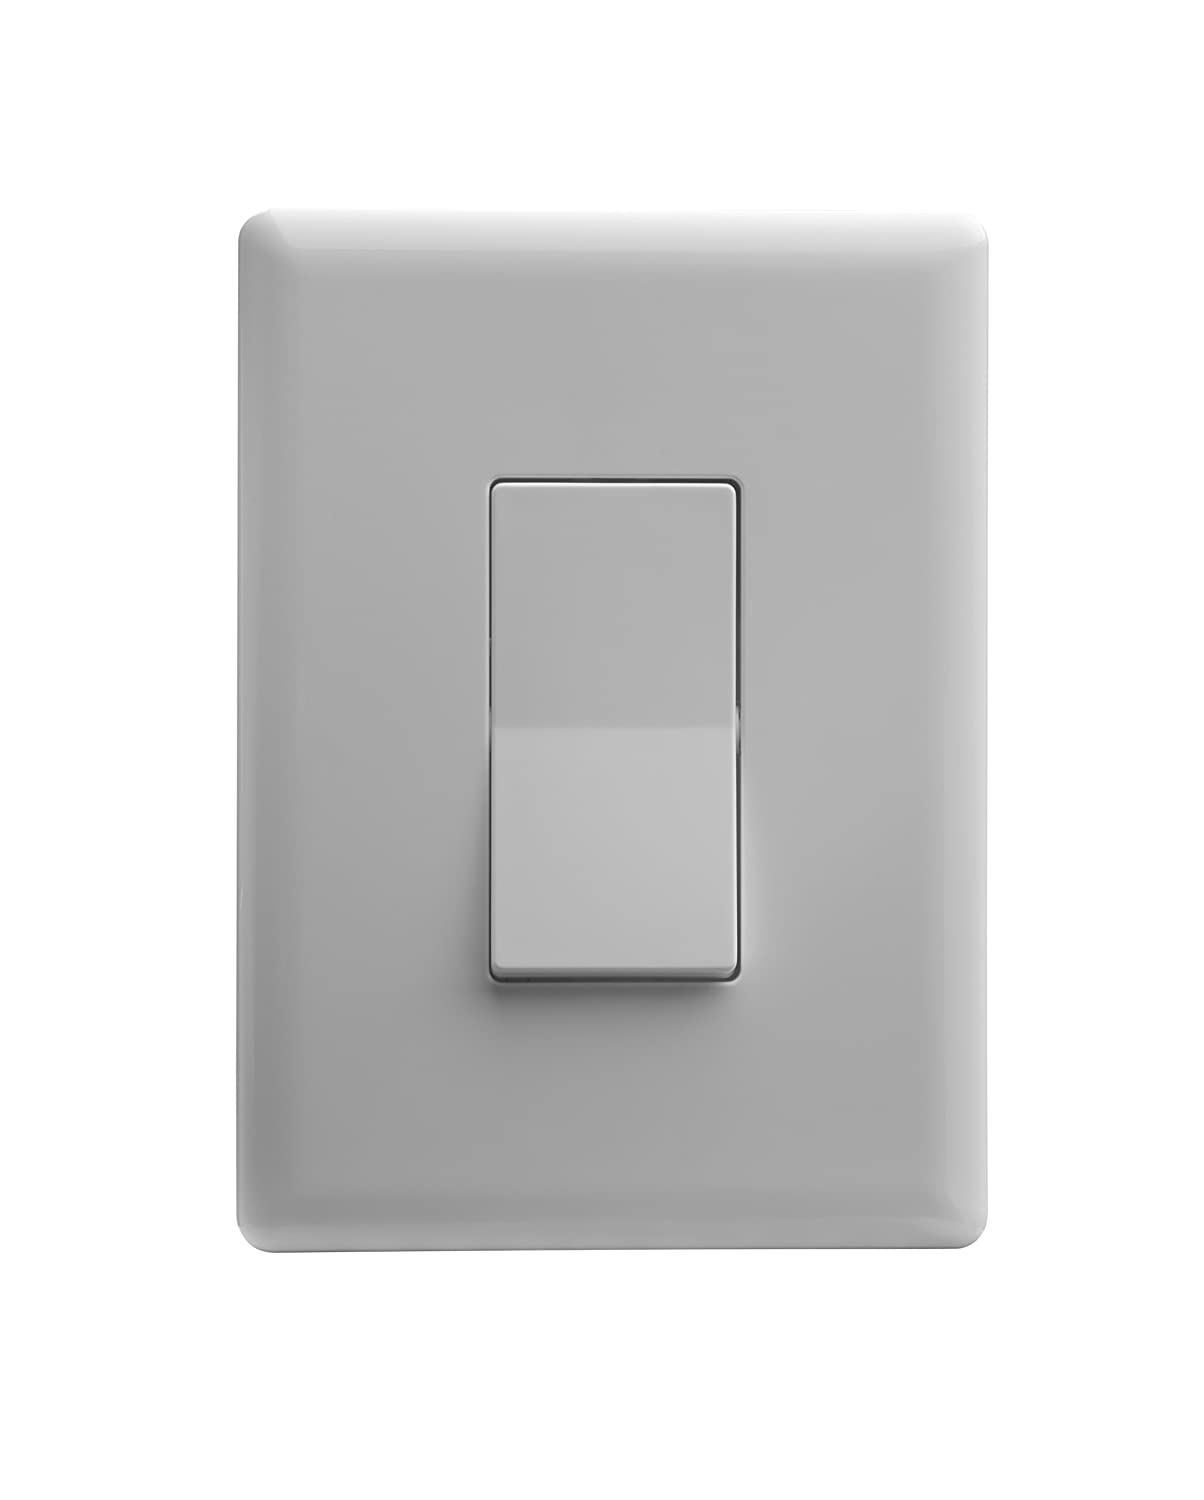 Home Automation Lighting, ZWAVE Plus Smart Switch by Ecolink, Lighting Control, White Single Rocker Style Light Switch Design (PN - SDLS2-ZWAVE5)